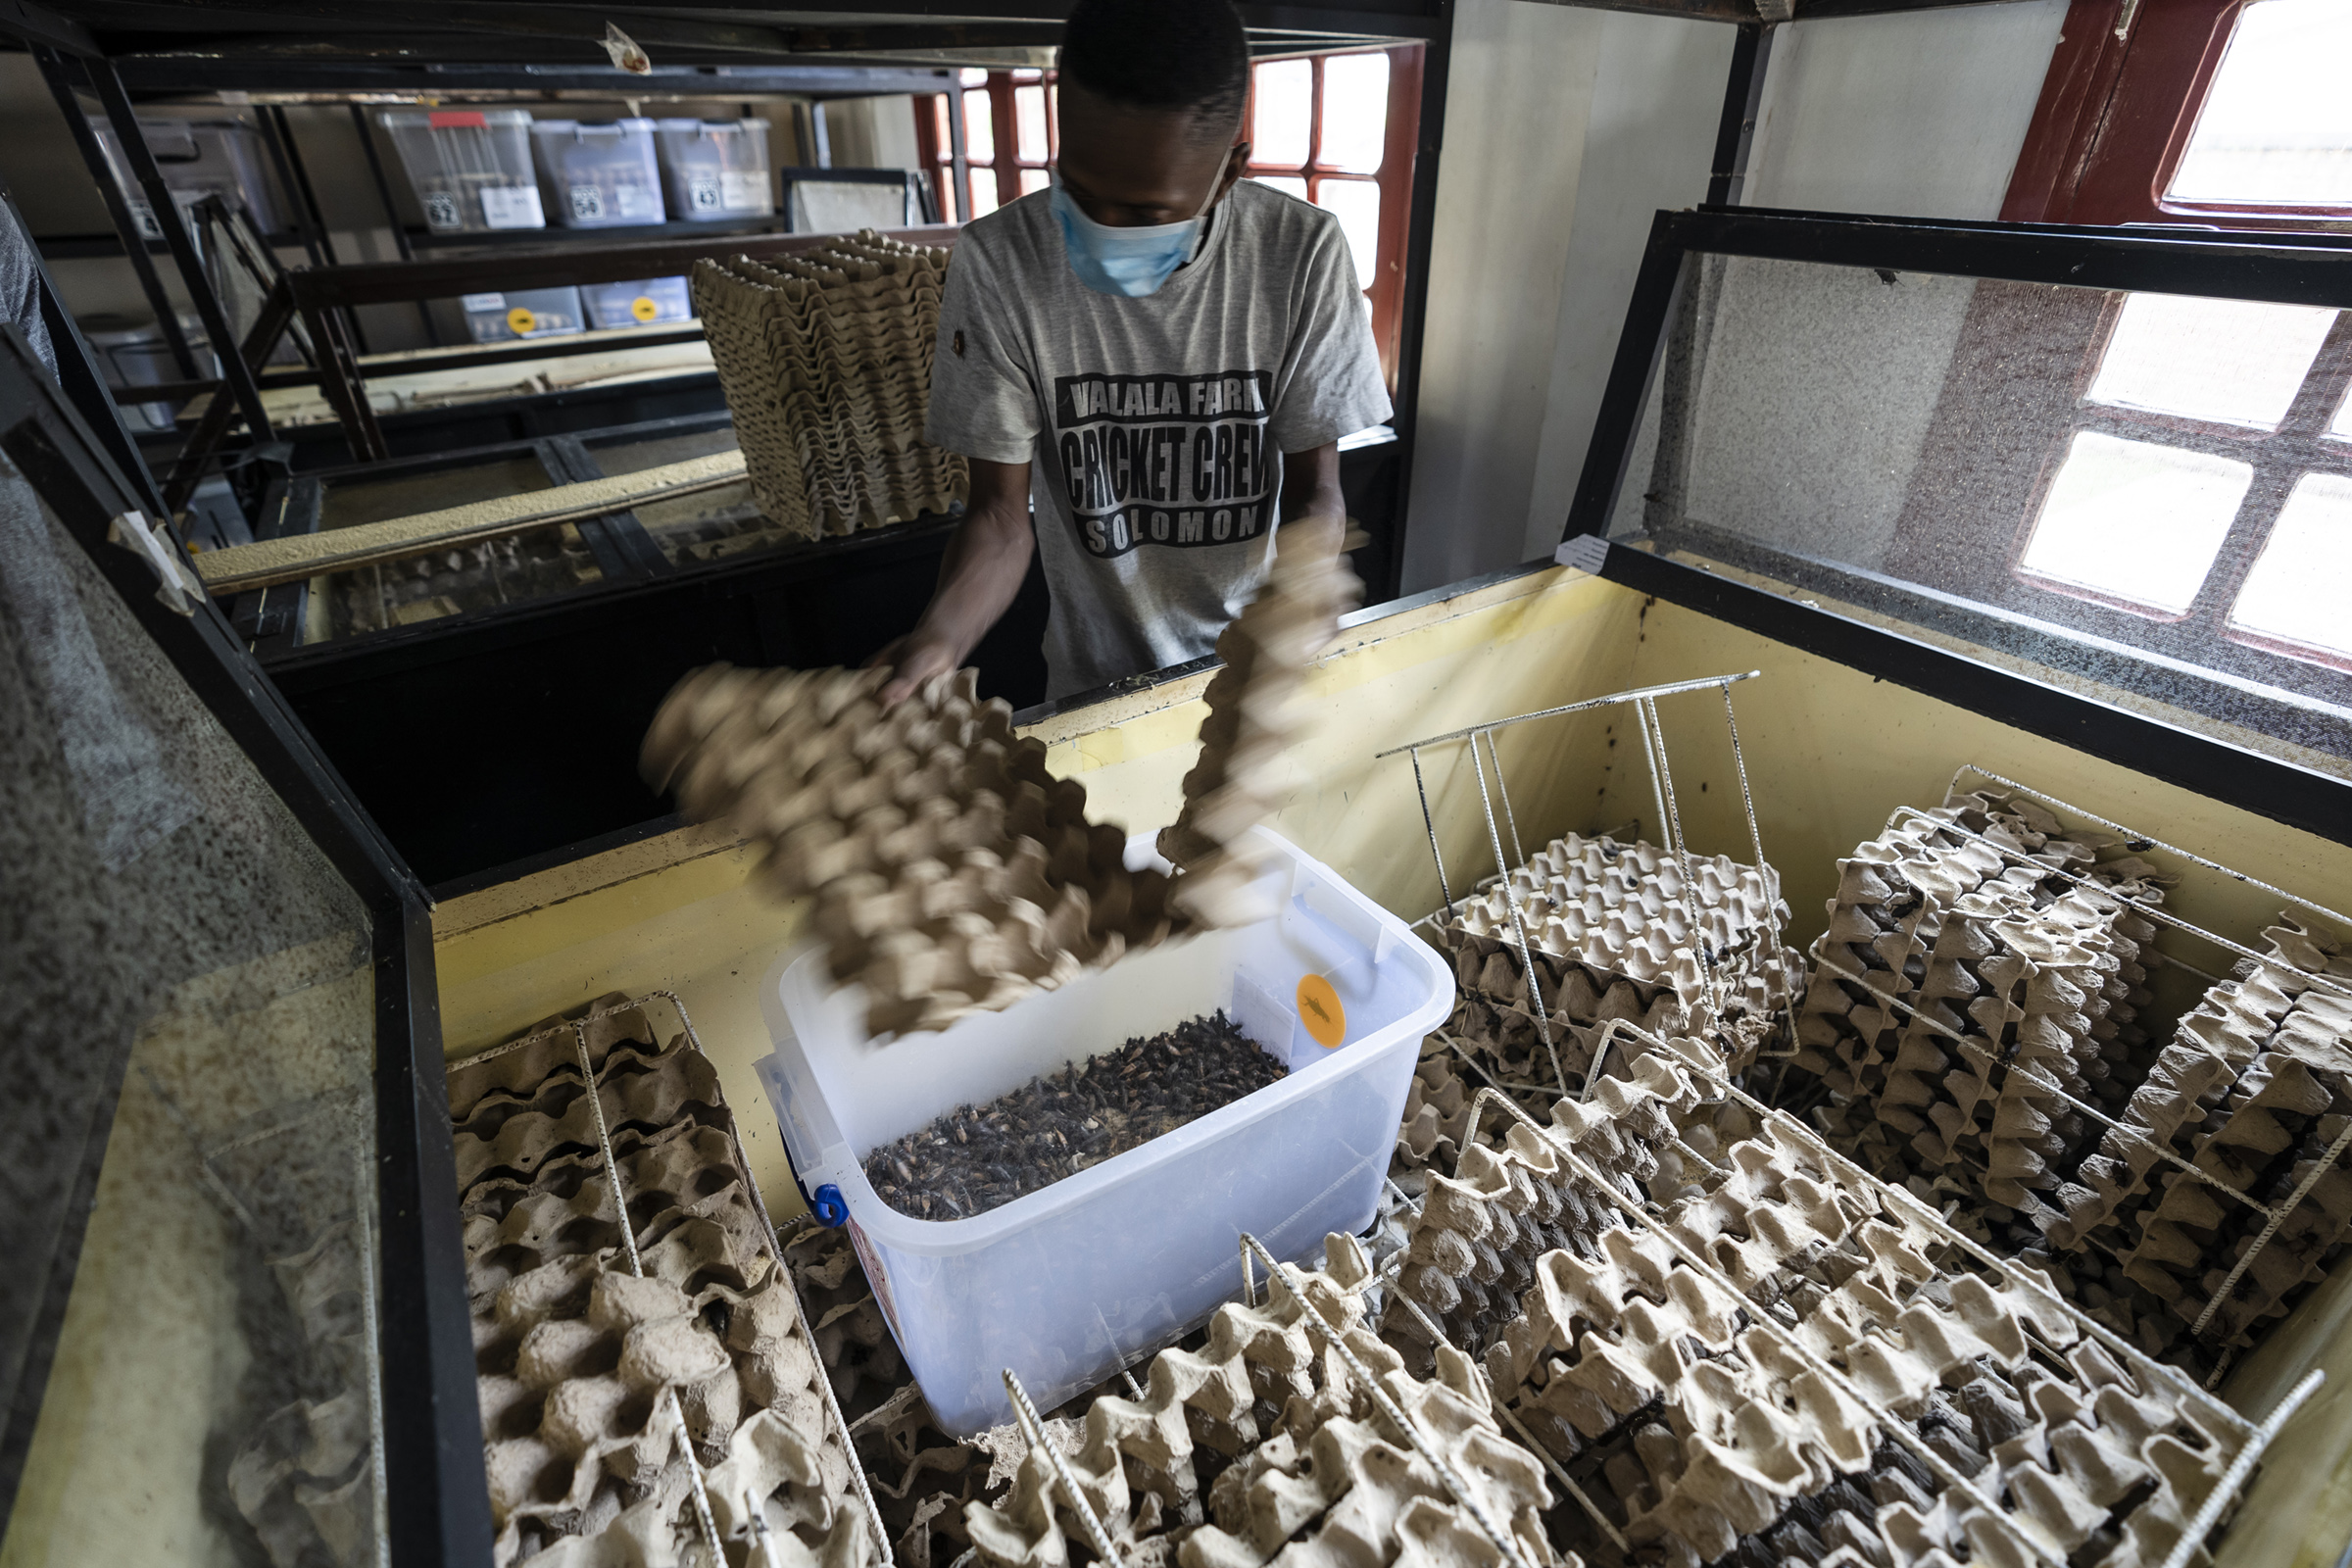 A staff worker harvesting mature adult crickets at Valala Farms in Antananarivo, Madagascar on Nov. 20, 2019.